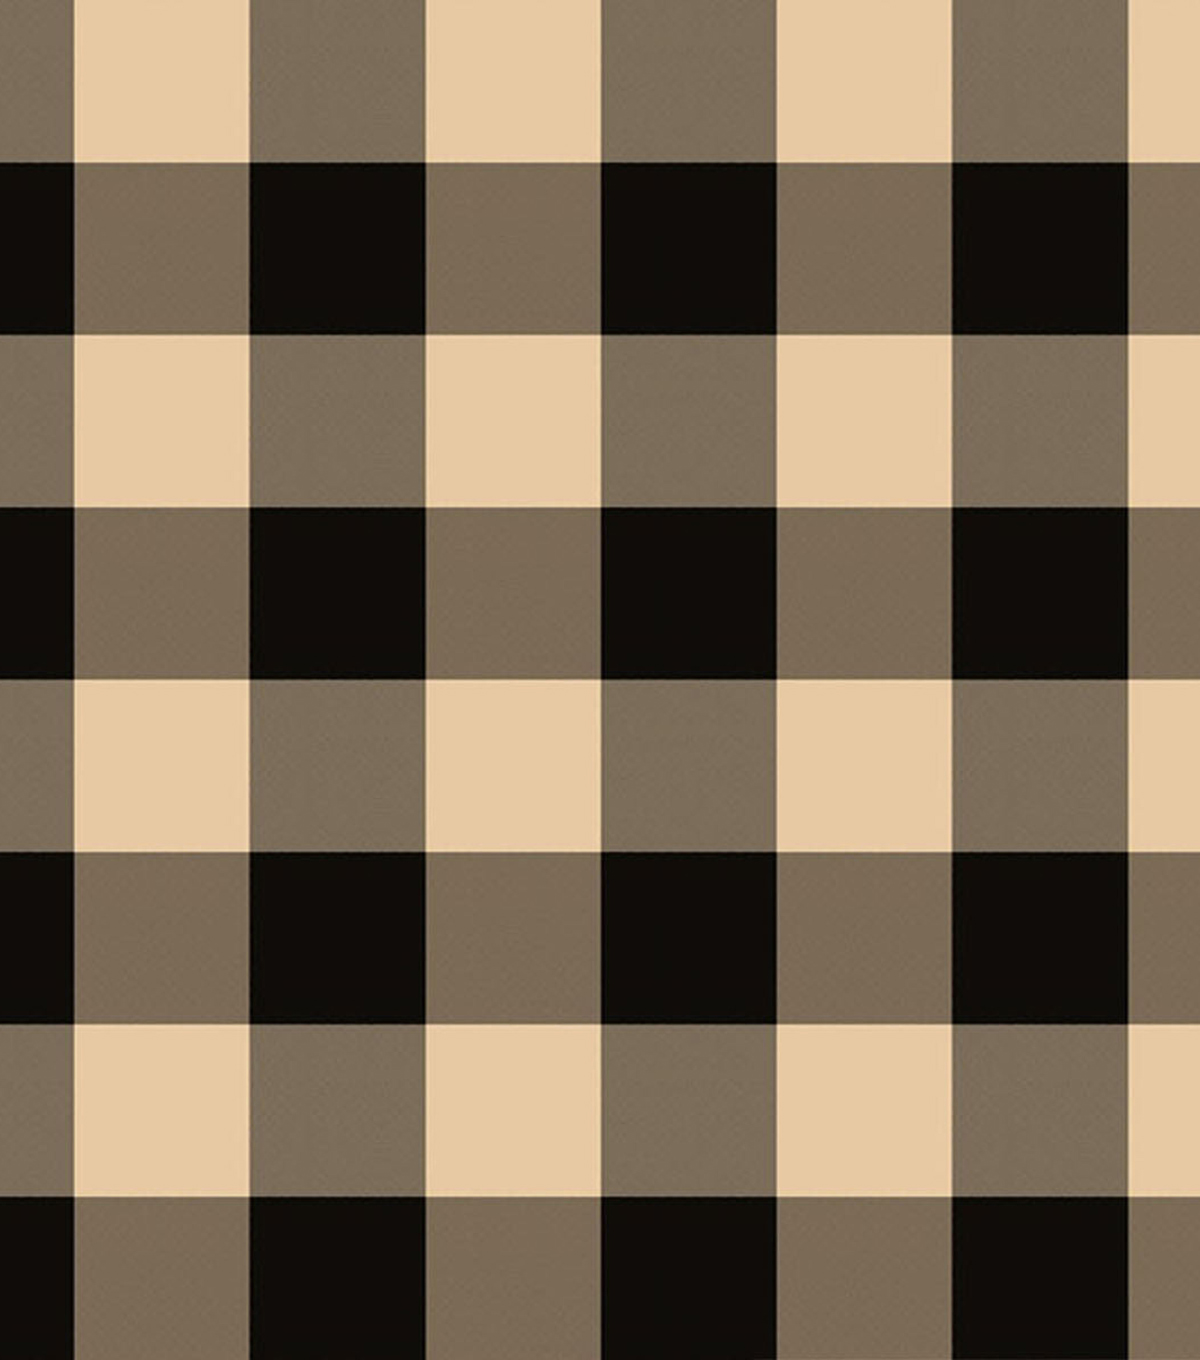 Covington Lightweight Decor Fabric-Black/Tan